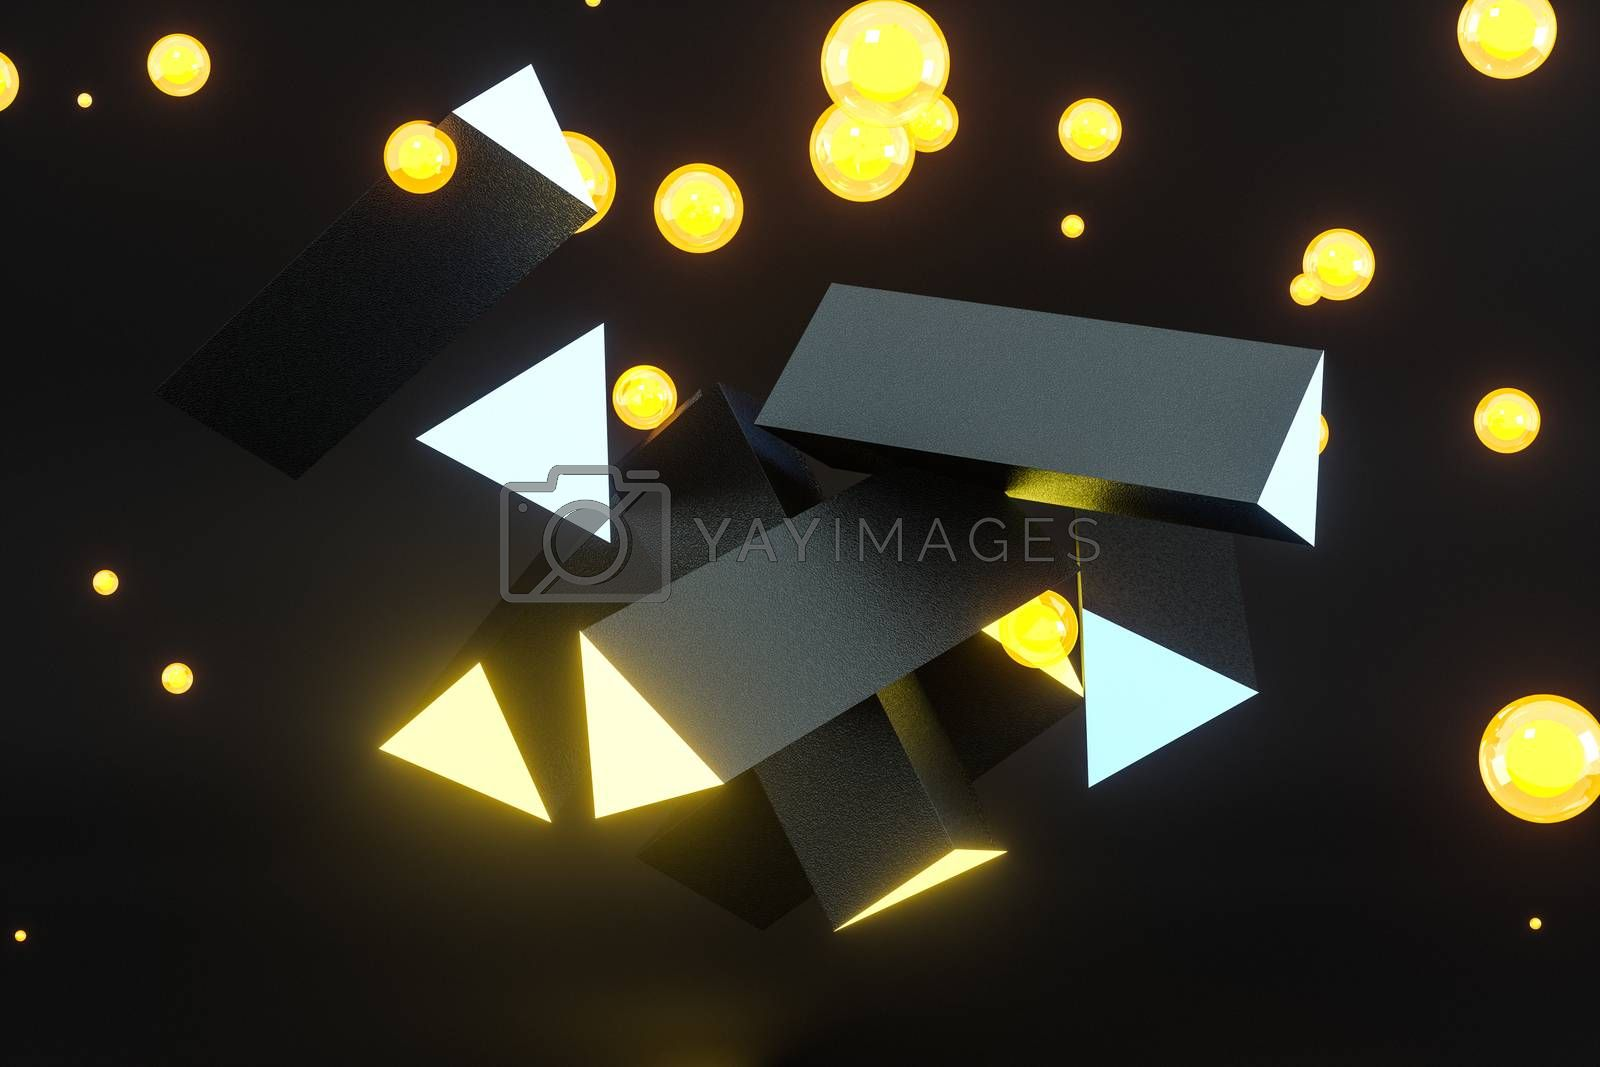 3d rendering, yellow glowing triangle pillar with dark background, by vinkfan